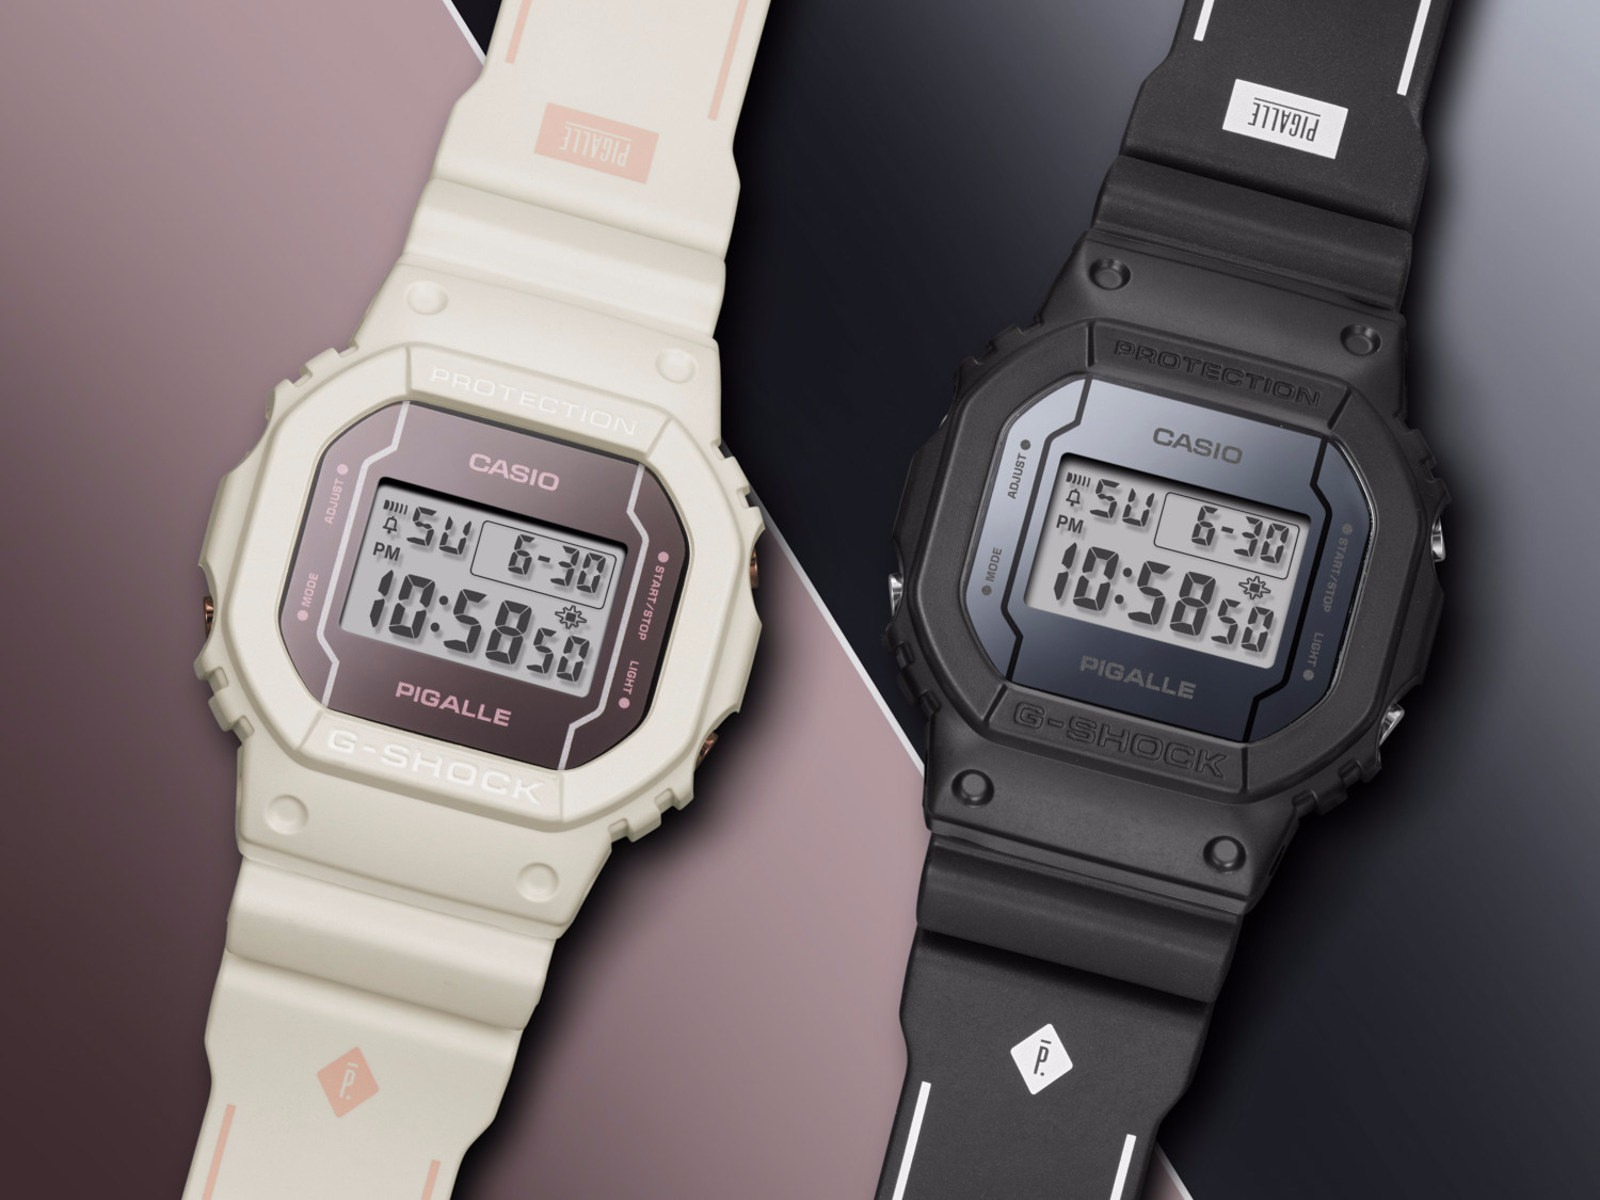 [Official] G-Shock DW-5600 x French Streetwear Brand Pigalle Limited Models